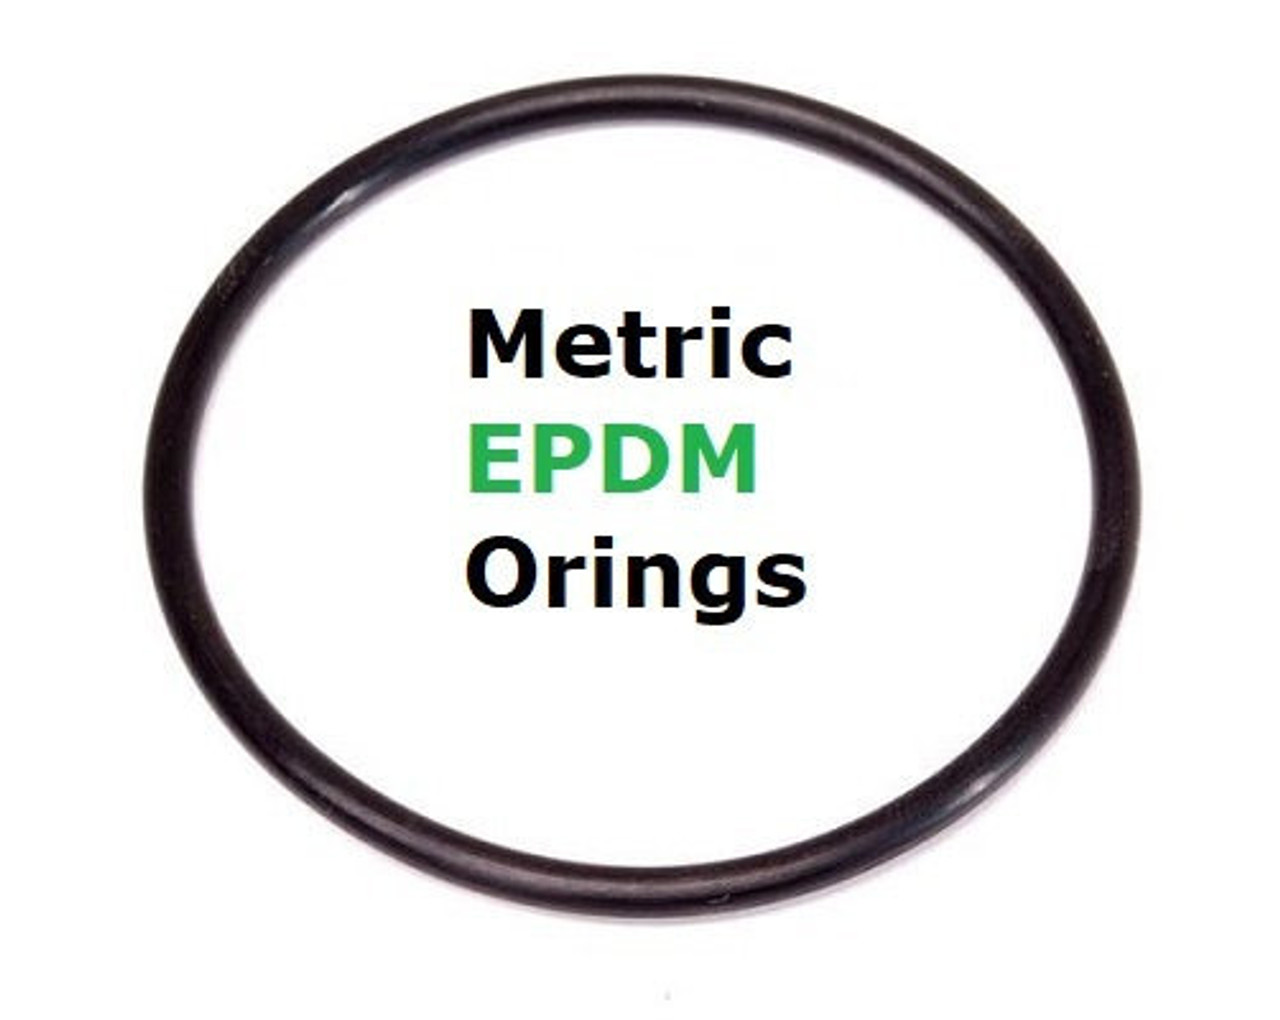 Metric EPDM 70  Orings 7.65 x 1.78mm  Price for 25 pcs